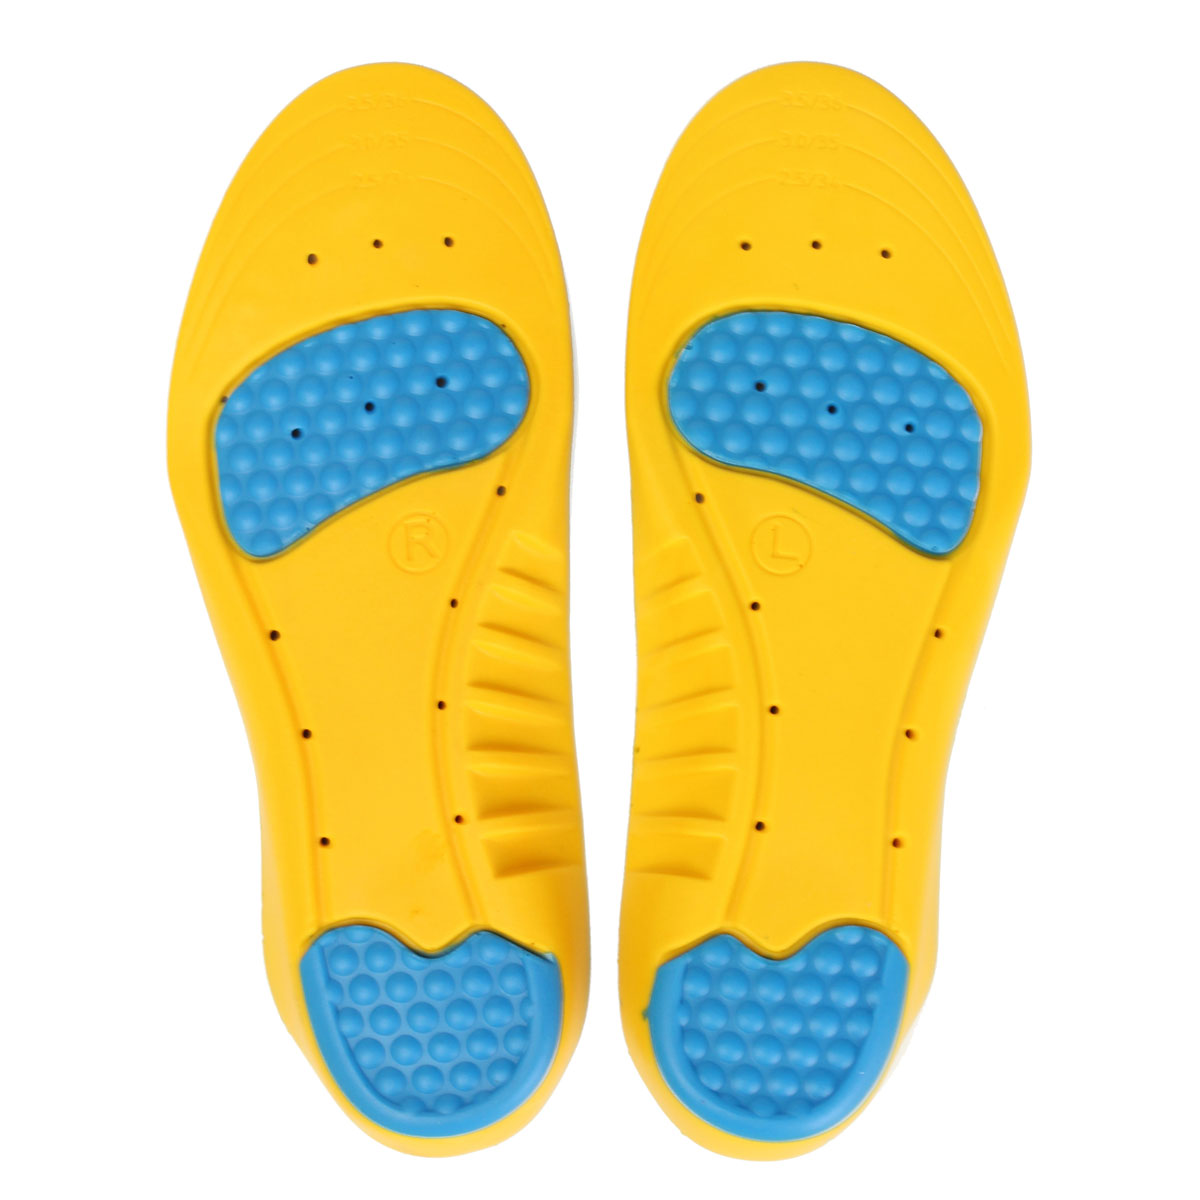 soft memory foam orthotics relief support shoes